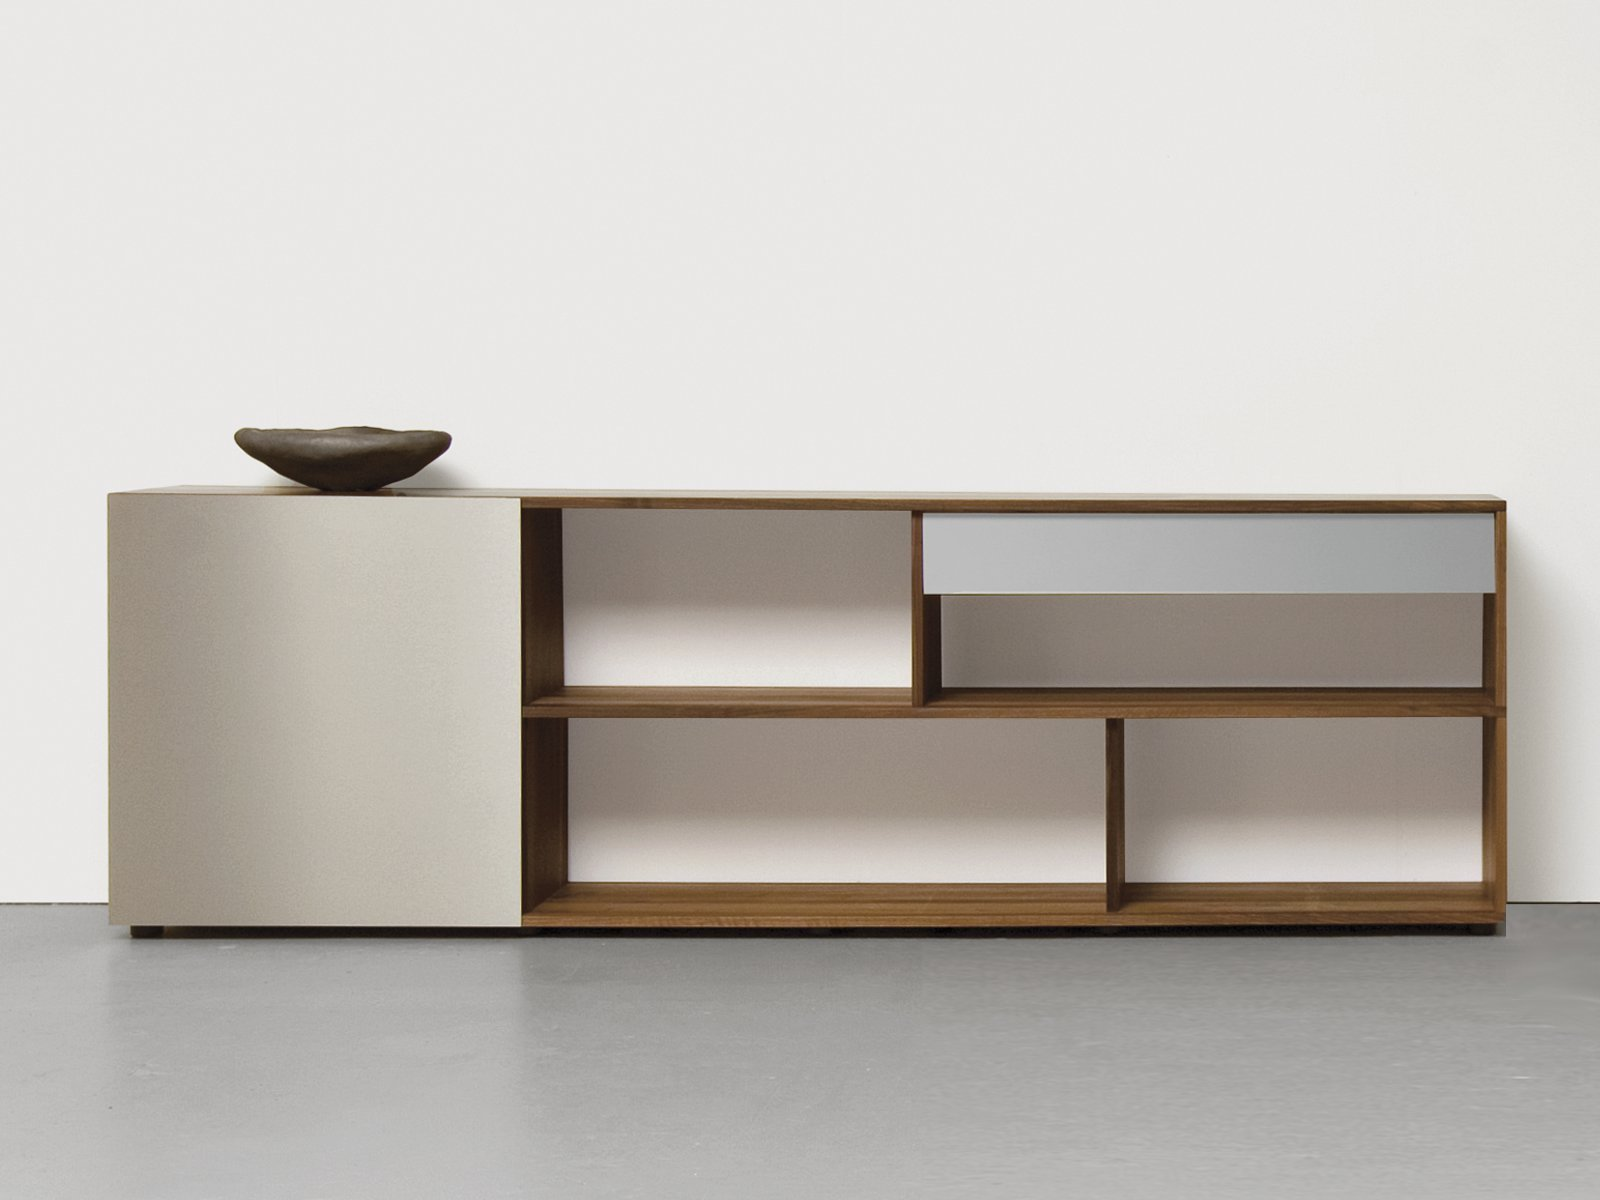 sideboard with sliding doors analog by sanktjohanser design matthias. Black Bedroom Furniture Sets. Home Design Ideas